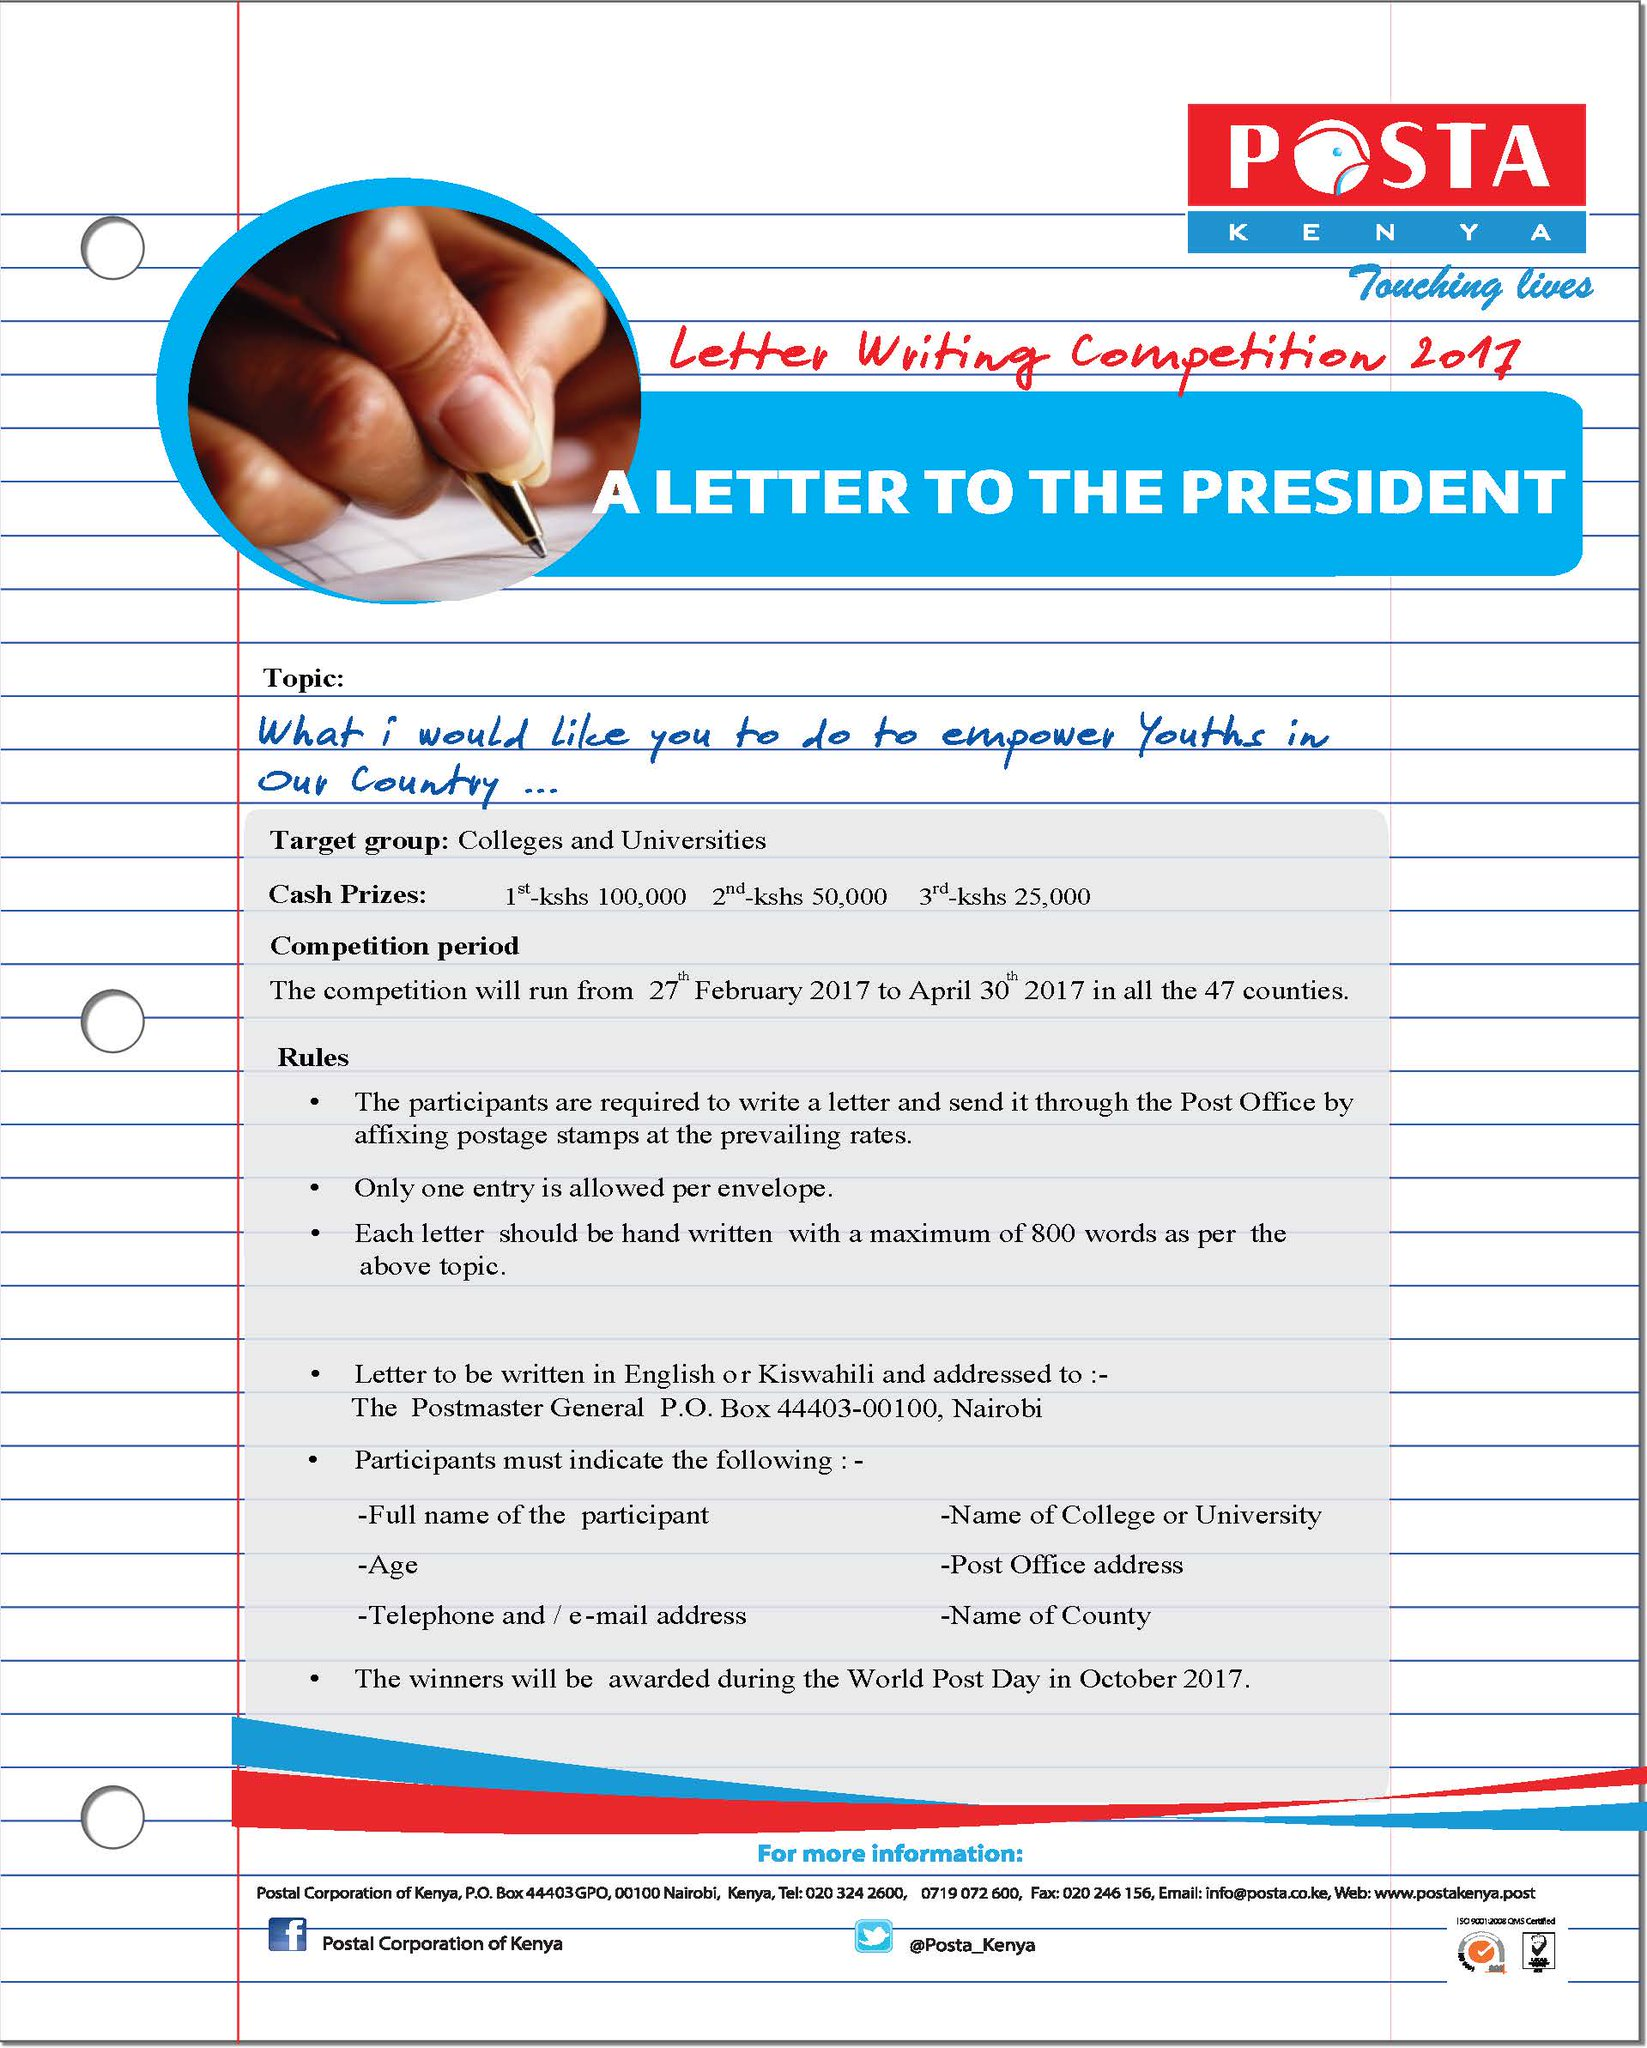 postmaster general on twitter a letter to the president posta_kenya letter writing competition 2017 railainmeru